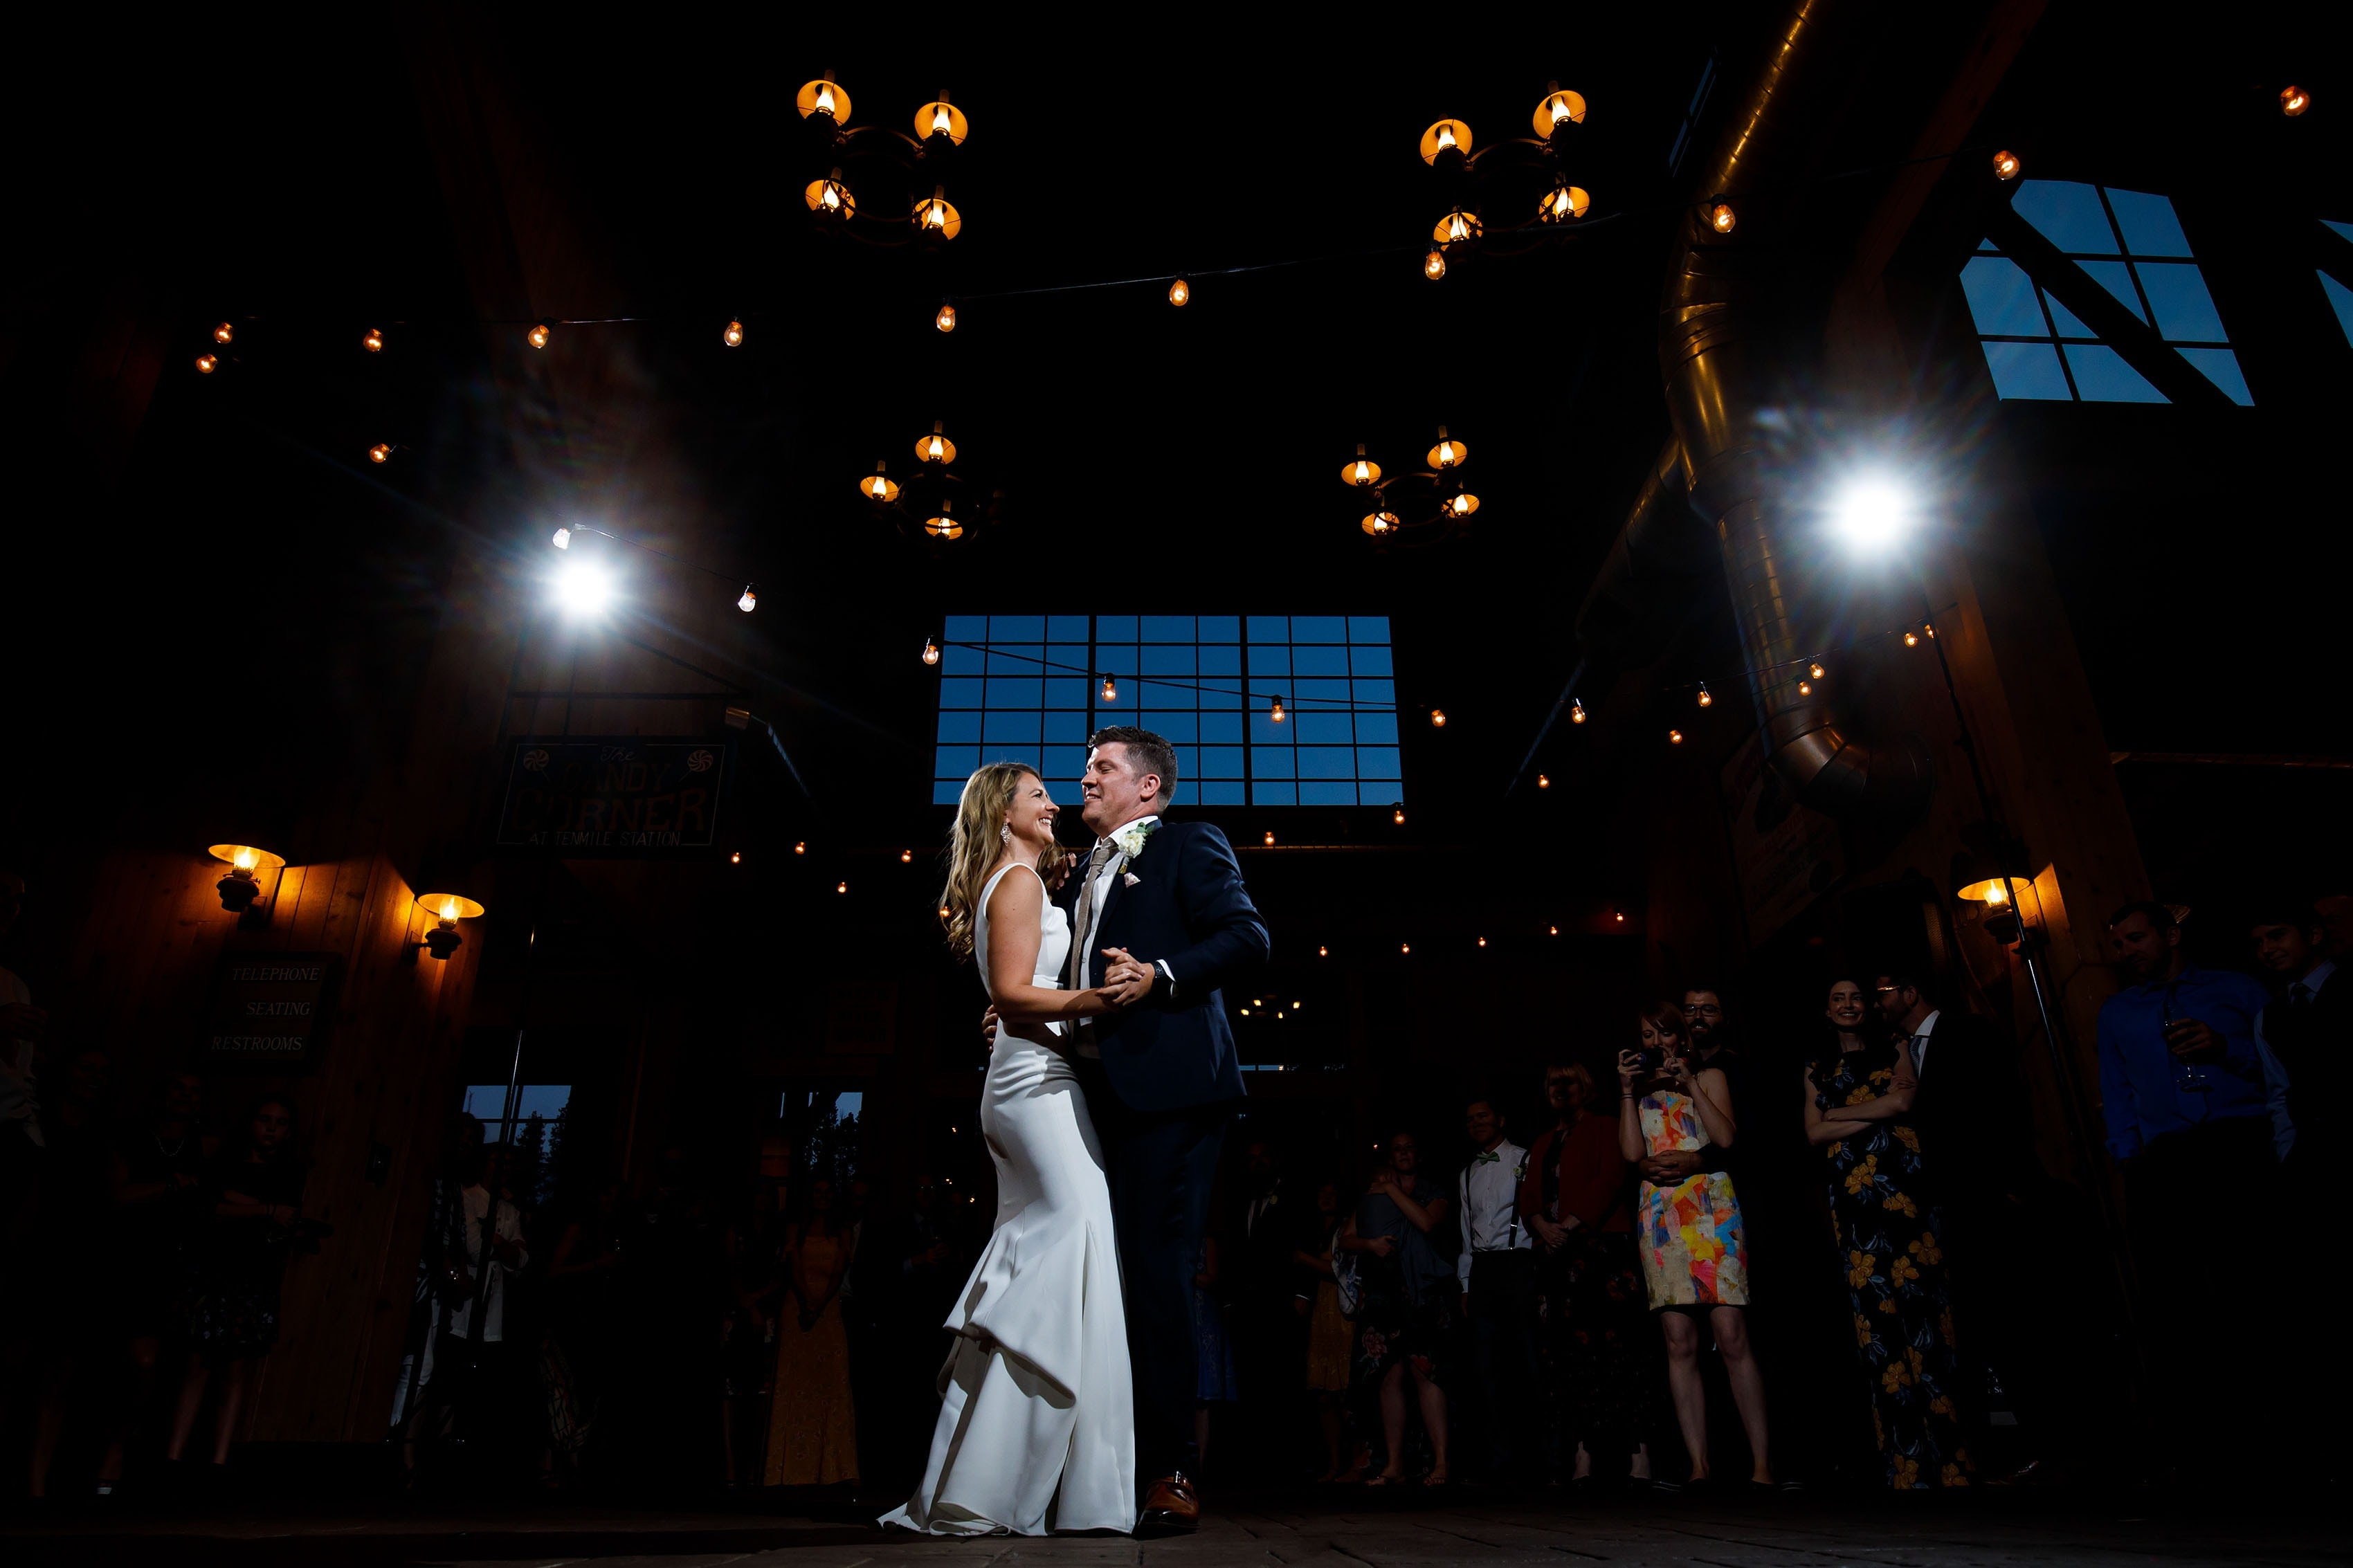 Heather and Matt dance together for the first time in Breckenridge